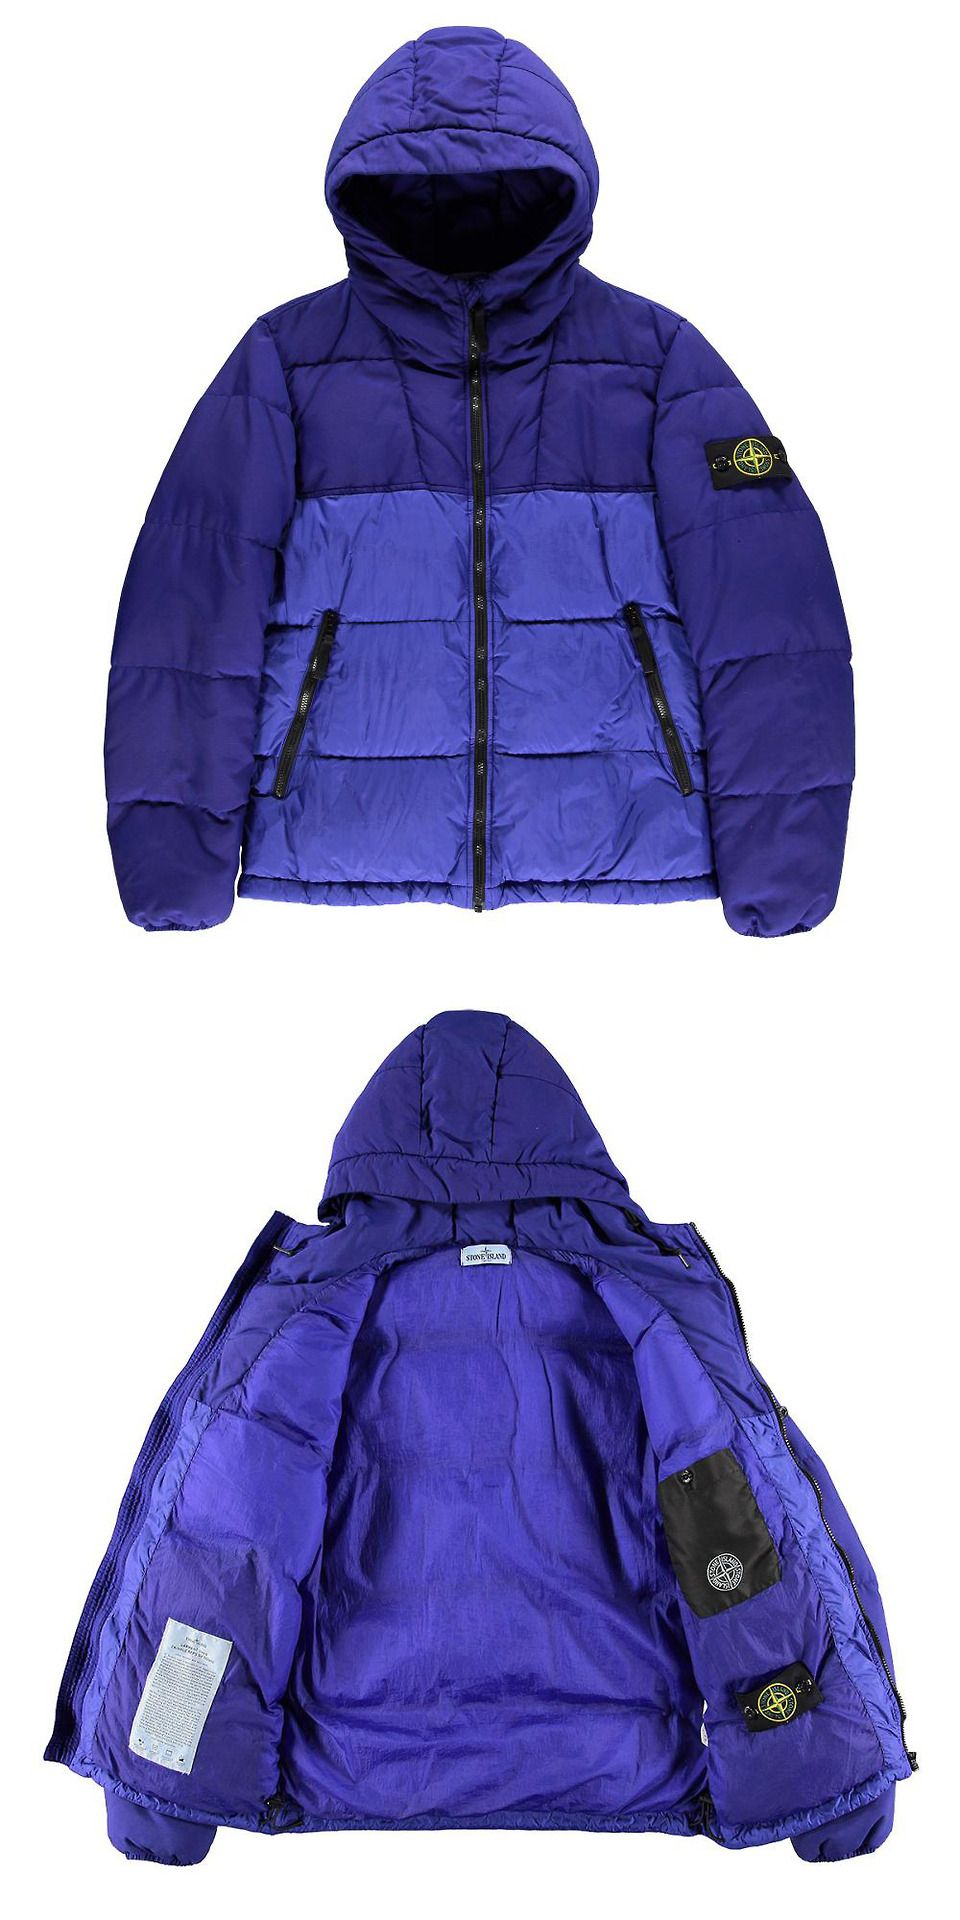 Crinkle Reps Ny Down Puffa Jacket By Stone Island Mens Outfits Football Fashion Mens Jackets [ 1920 x 960 Pixel ]